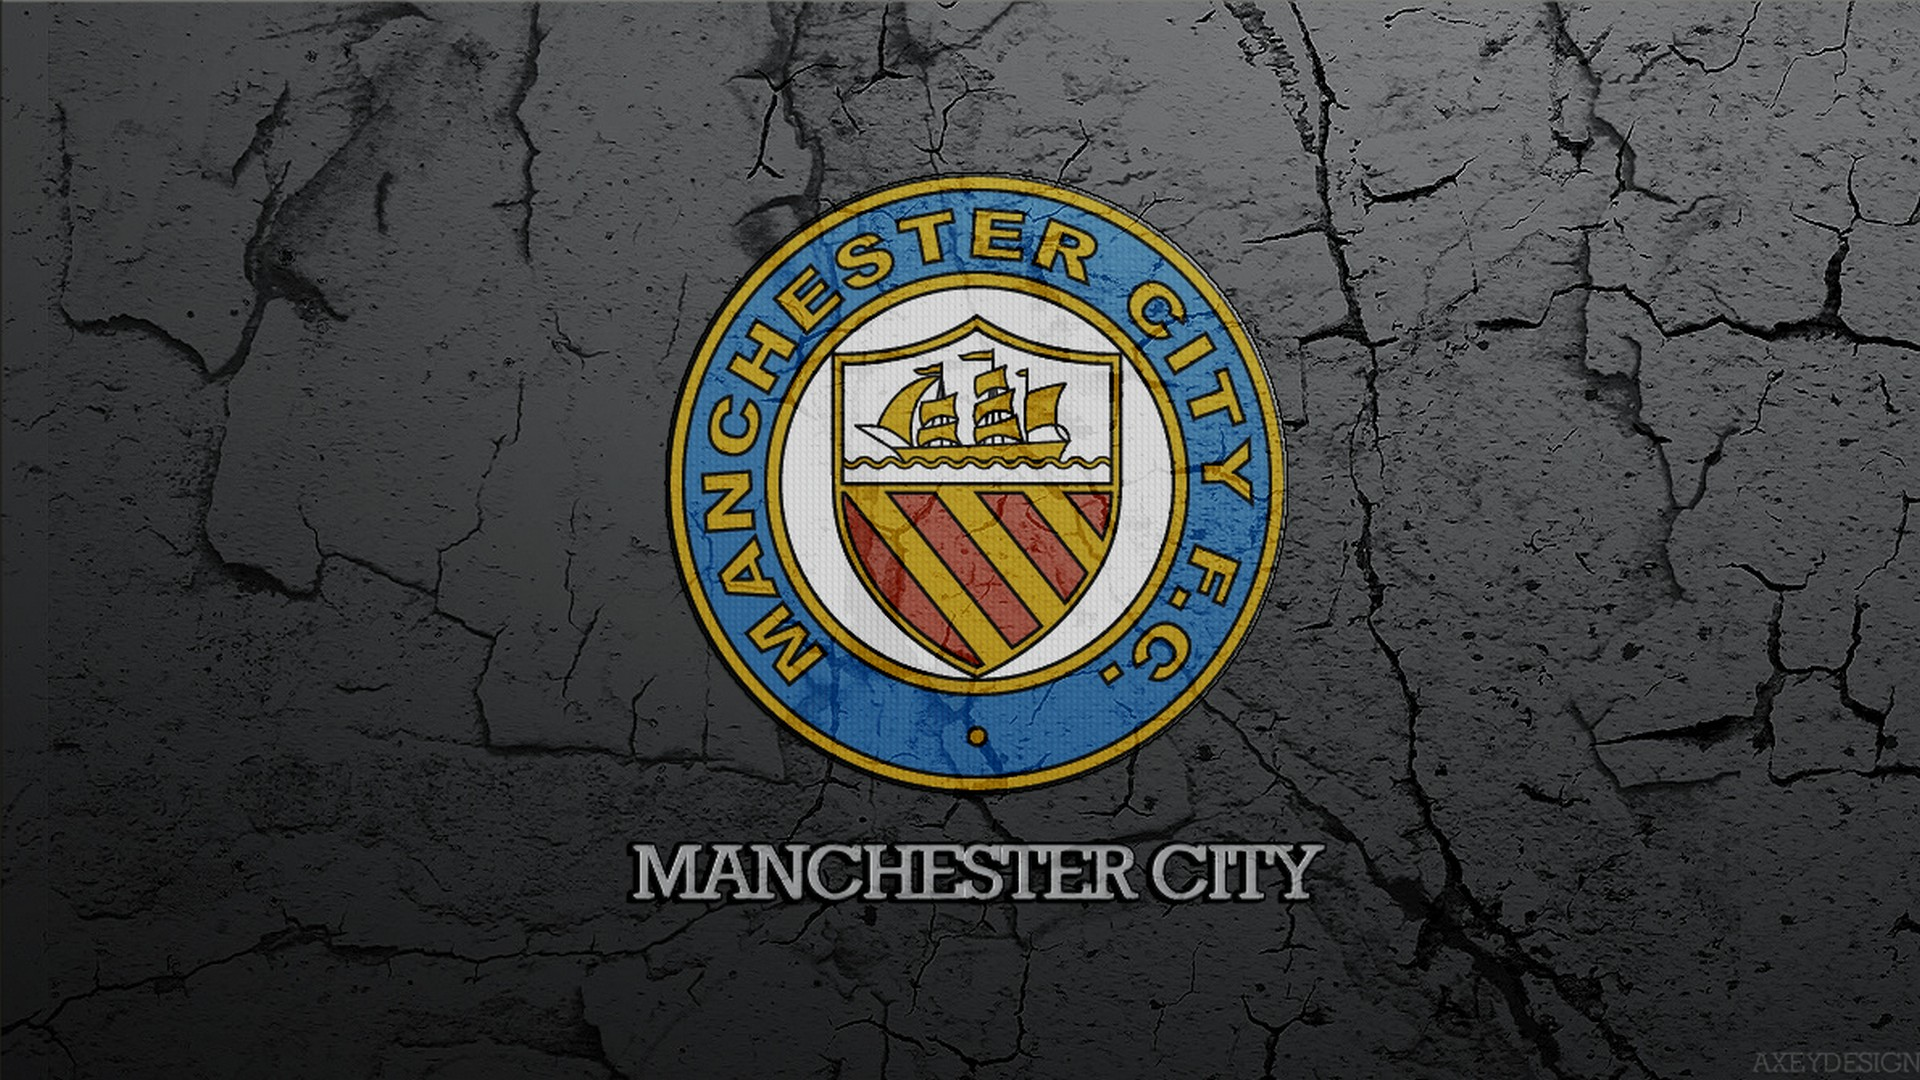 HD Backgrounds Manchester City 2019 Football Wallpaper 1920x1080